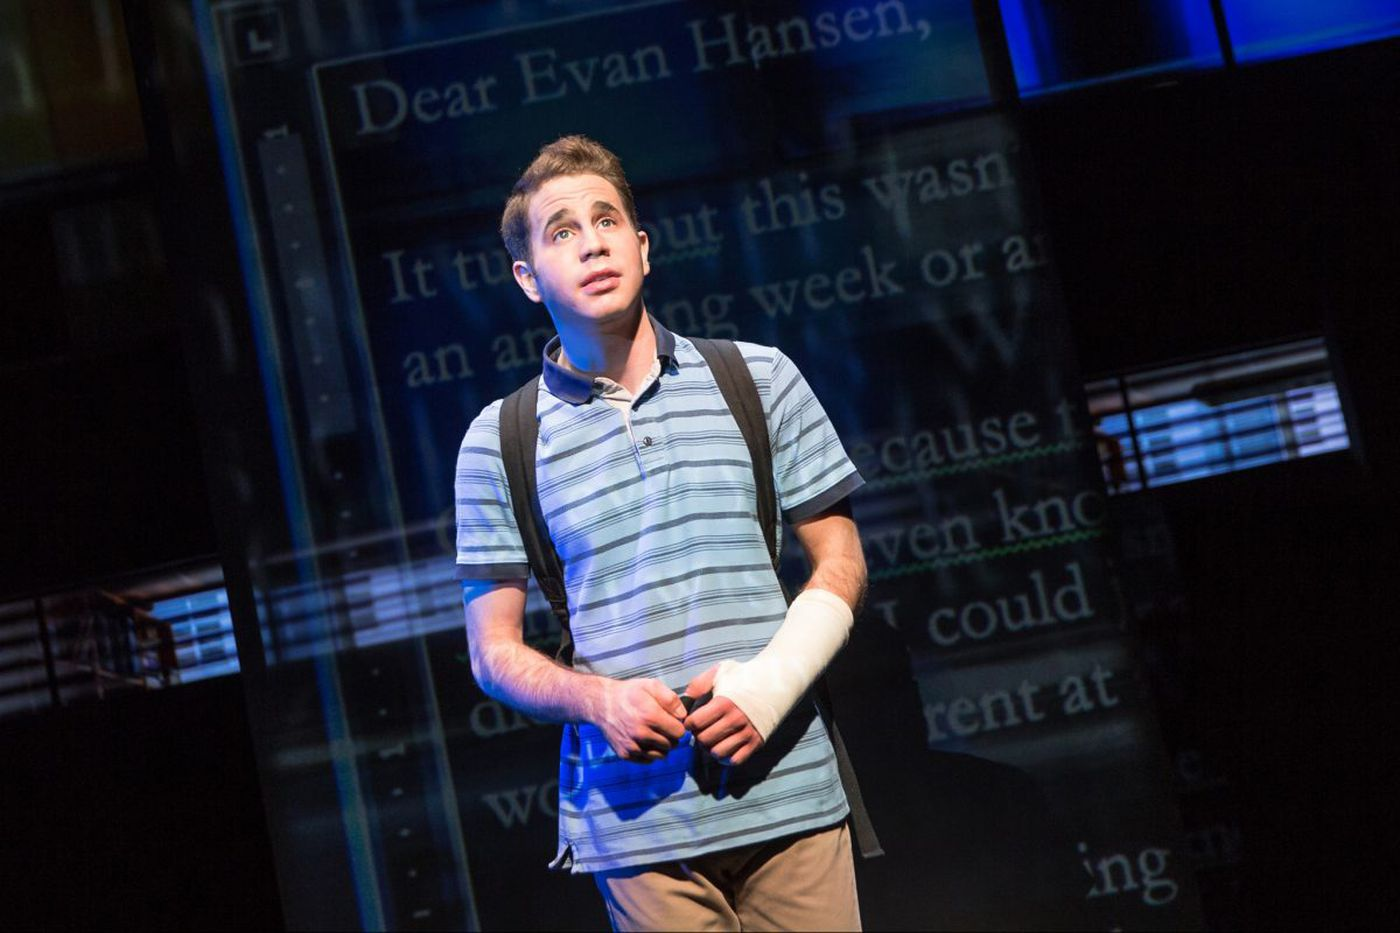 Lin-Manuel Miranda releases mashup with 'Dear Evan Hansen' star for March for Our Lives